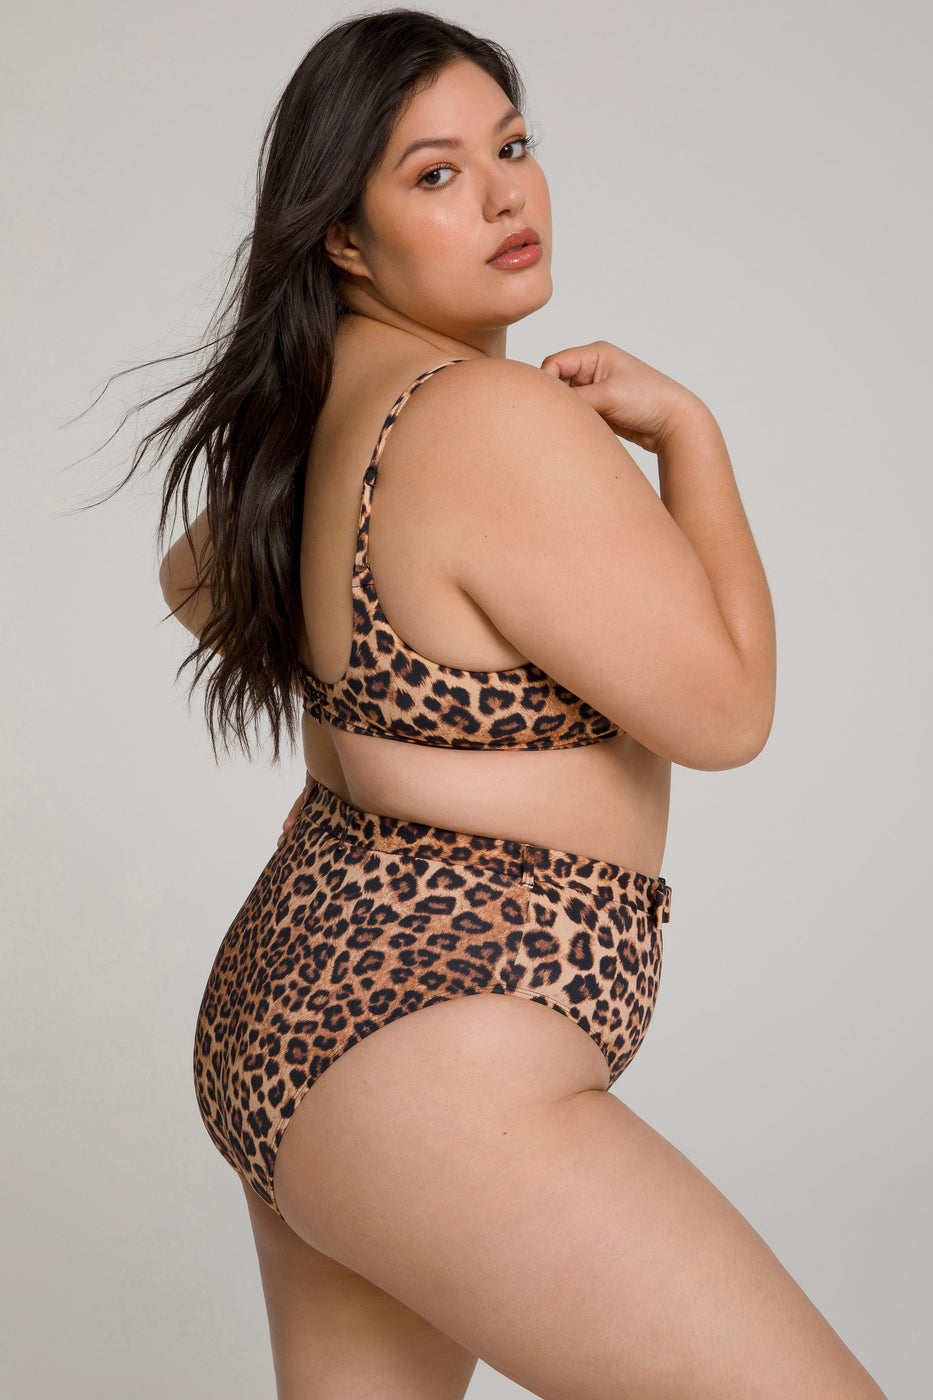 SHOWOFF CURVE TOP | LEOPARD004